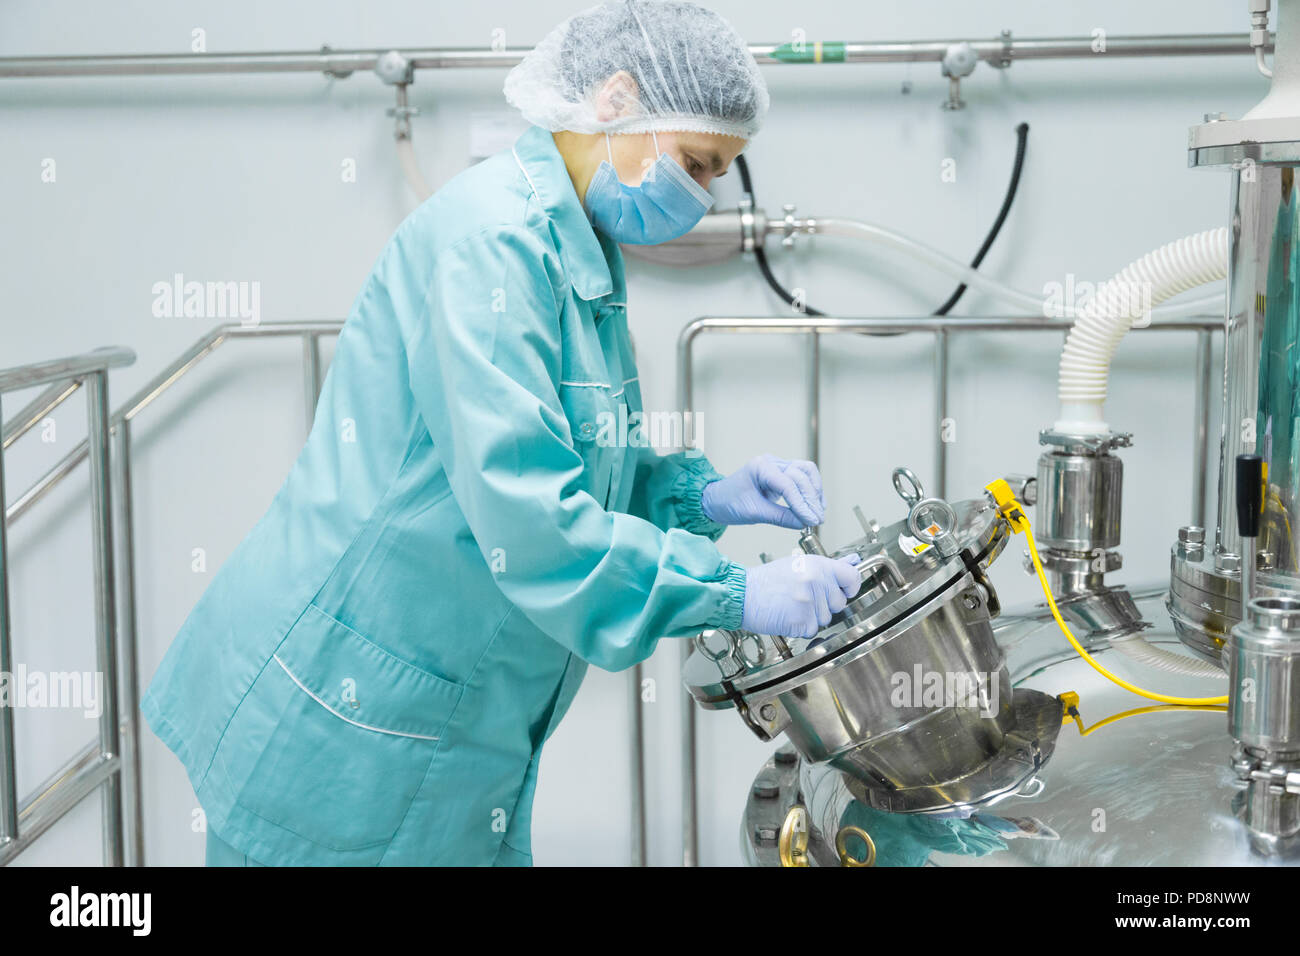 Pharmaceutical factory woman worker in protective clothing operating production line in sterile environment - Stock Image